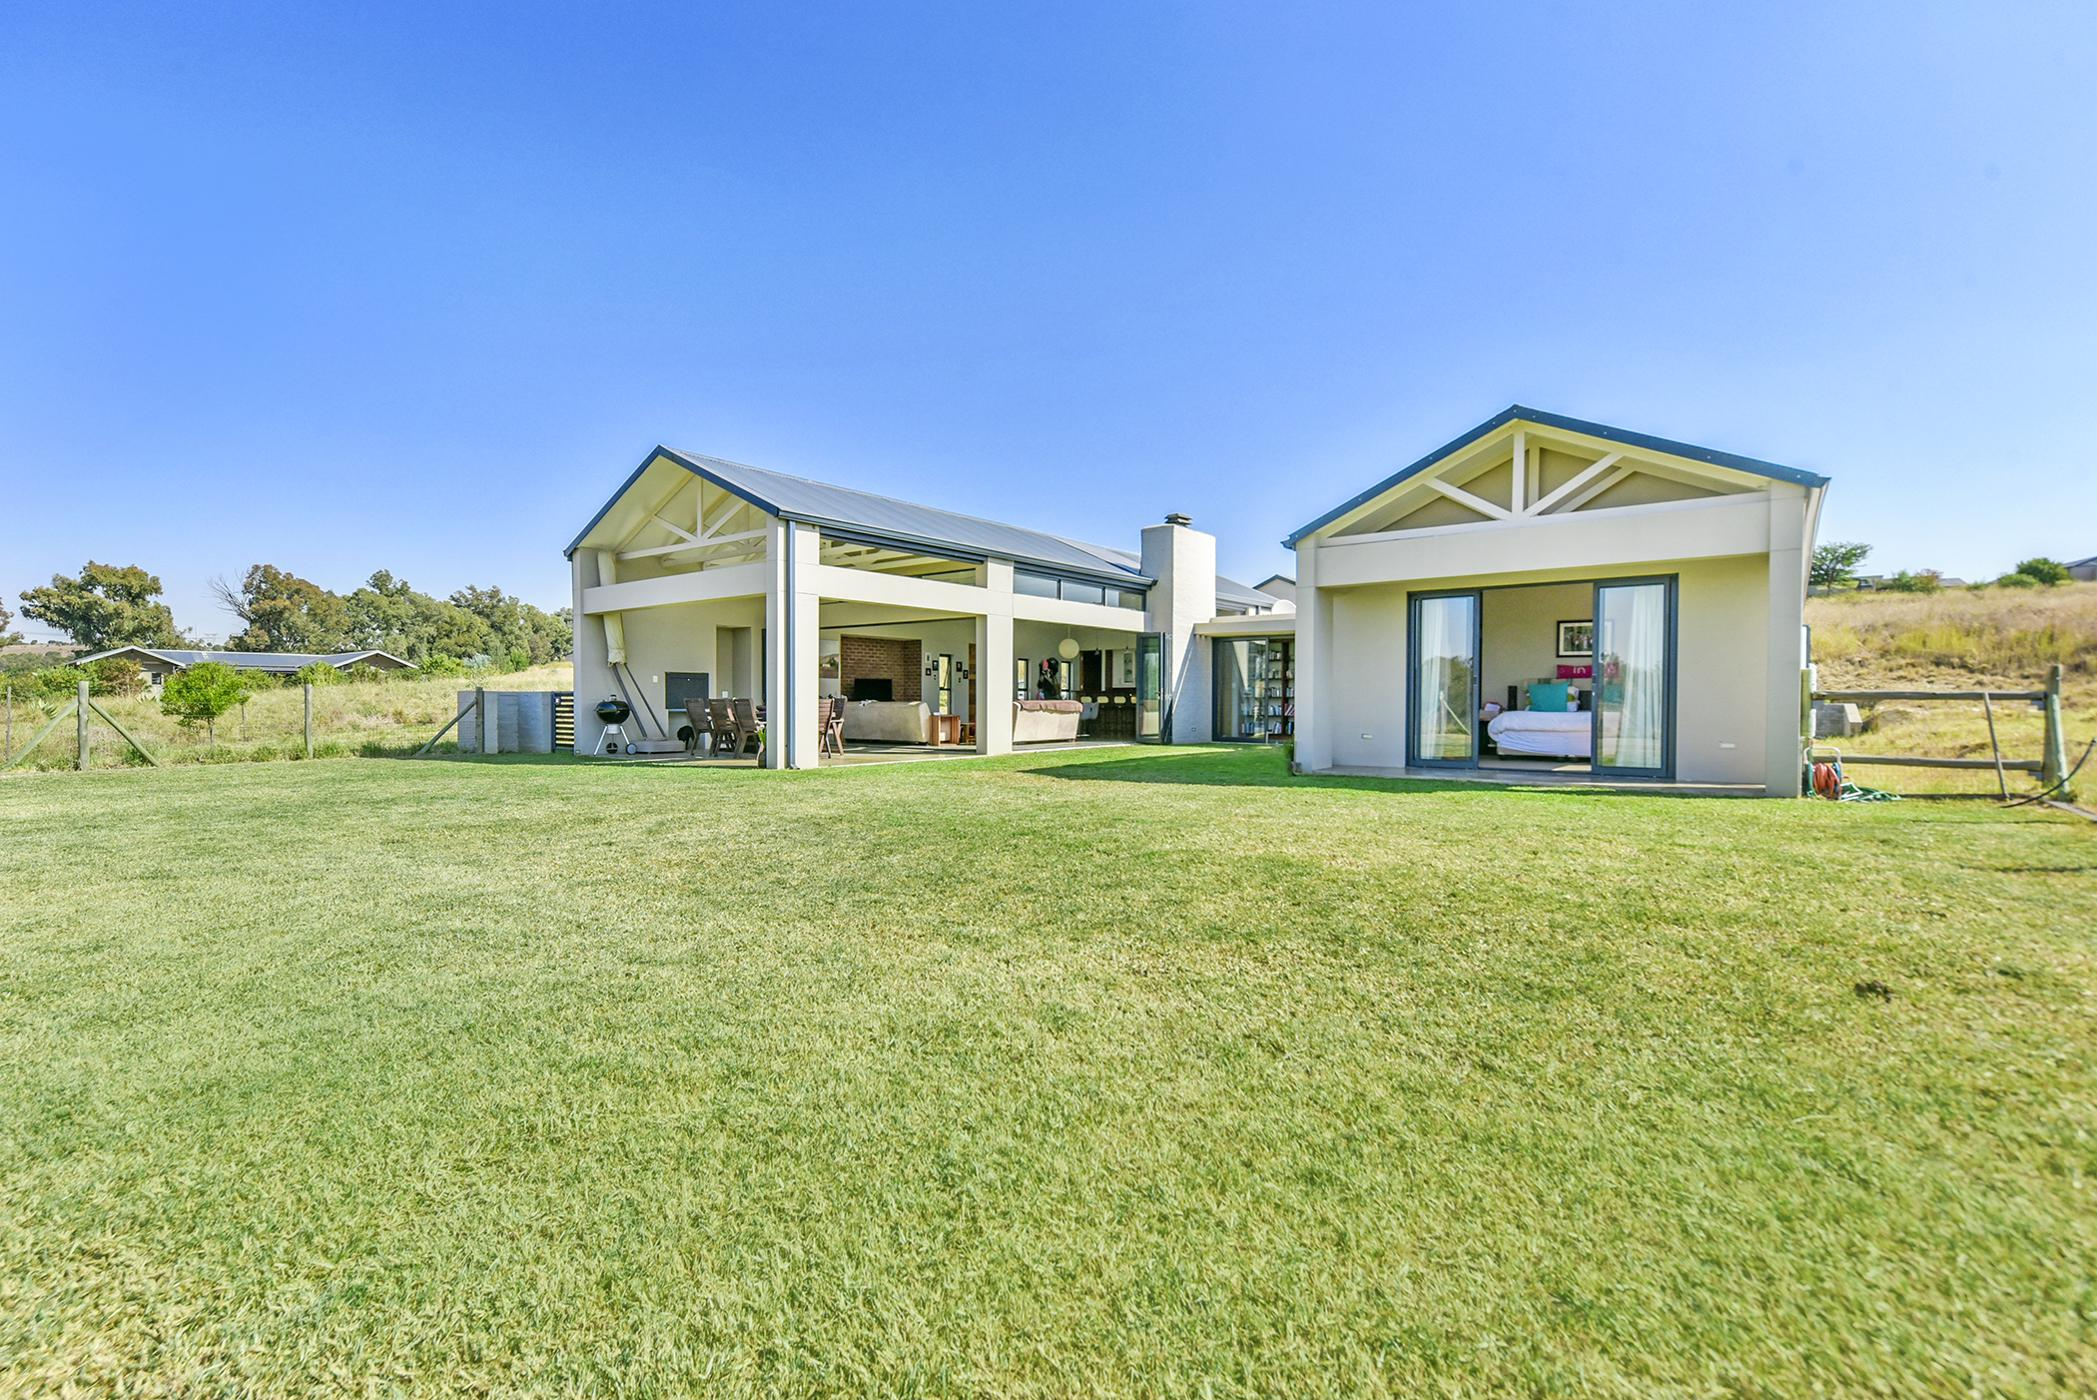 https://listing.pamgolding.co.za/images/properties/201906/1363878/H/1363878_H_2.jpg